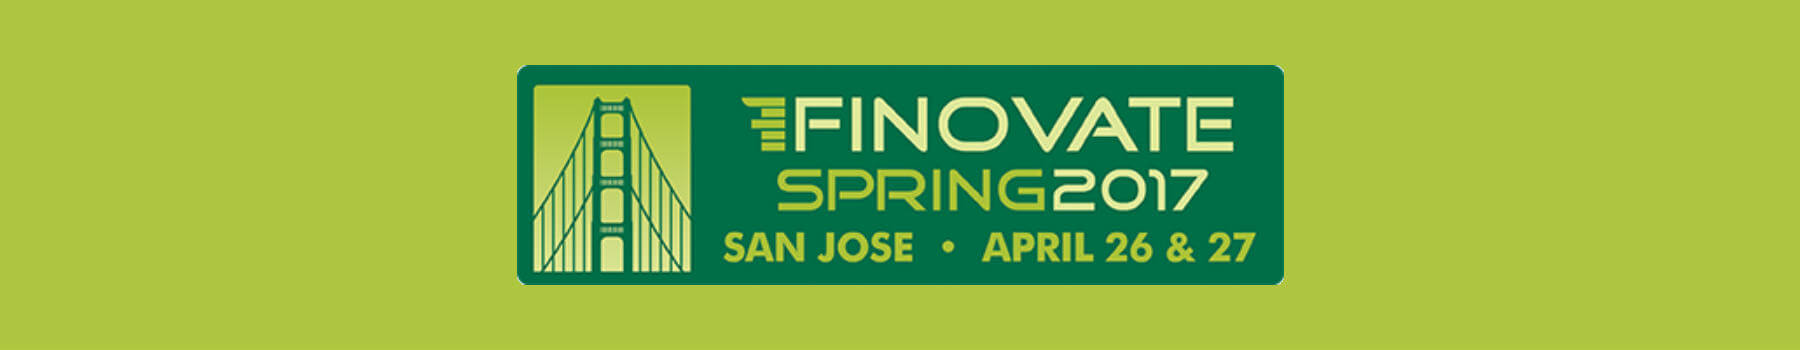 Finovate-San-Jose-Wide